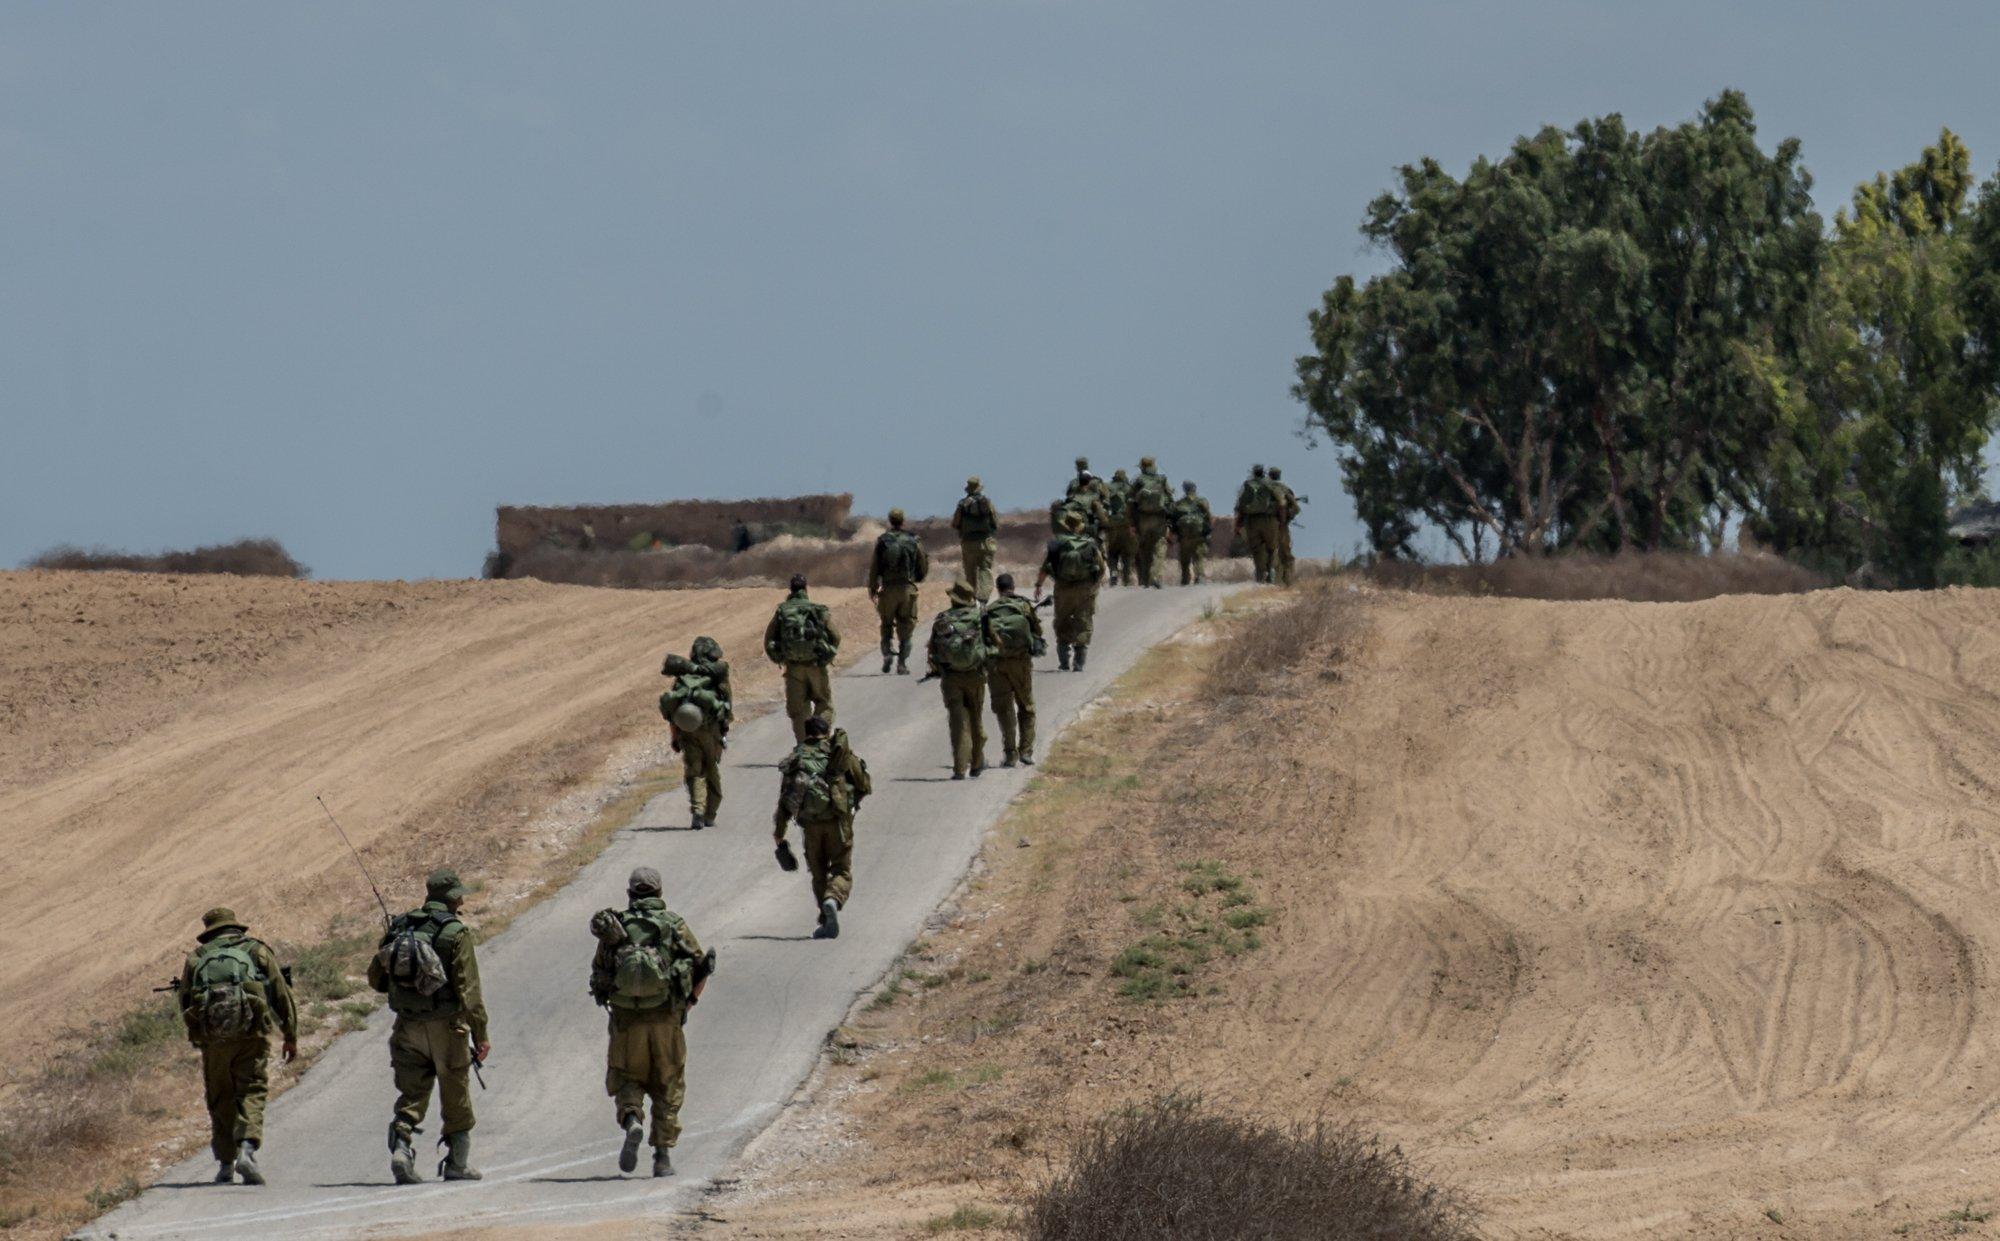 Israeli soldiers march in southern Israel near the border with Gaza, on July 18, 2014, the 11th day of Operation Protective Edge.